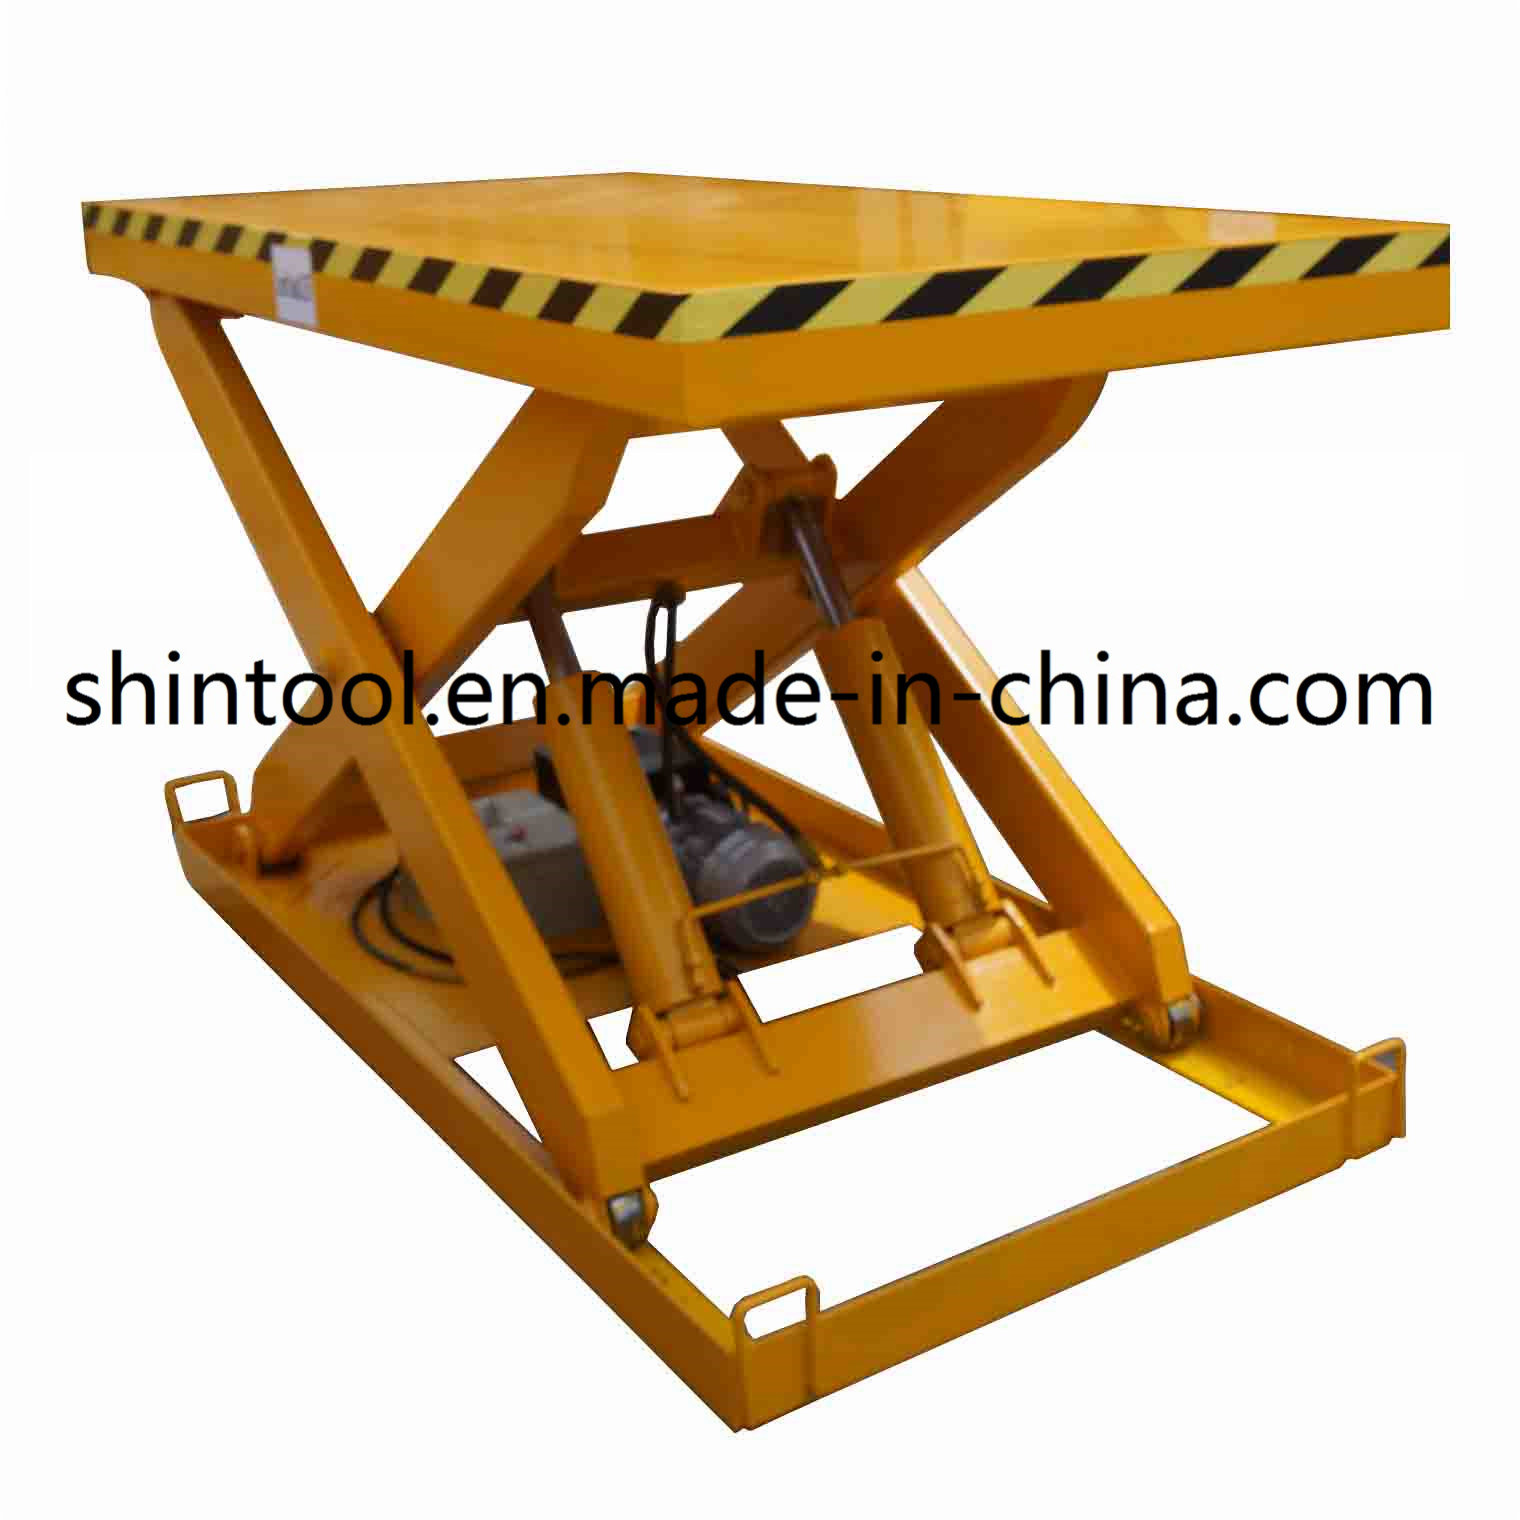 2000kg Scissor Lift with Max. Height 1100mm (Customizable)